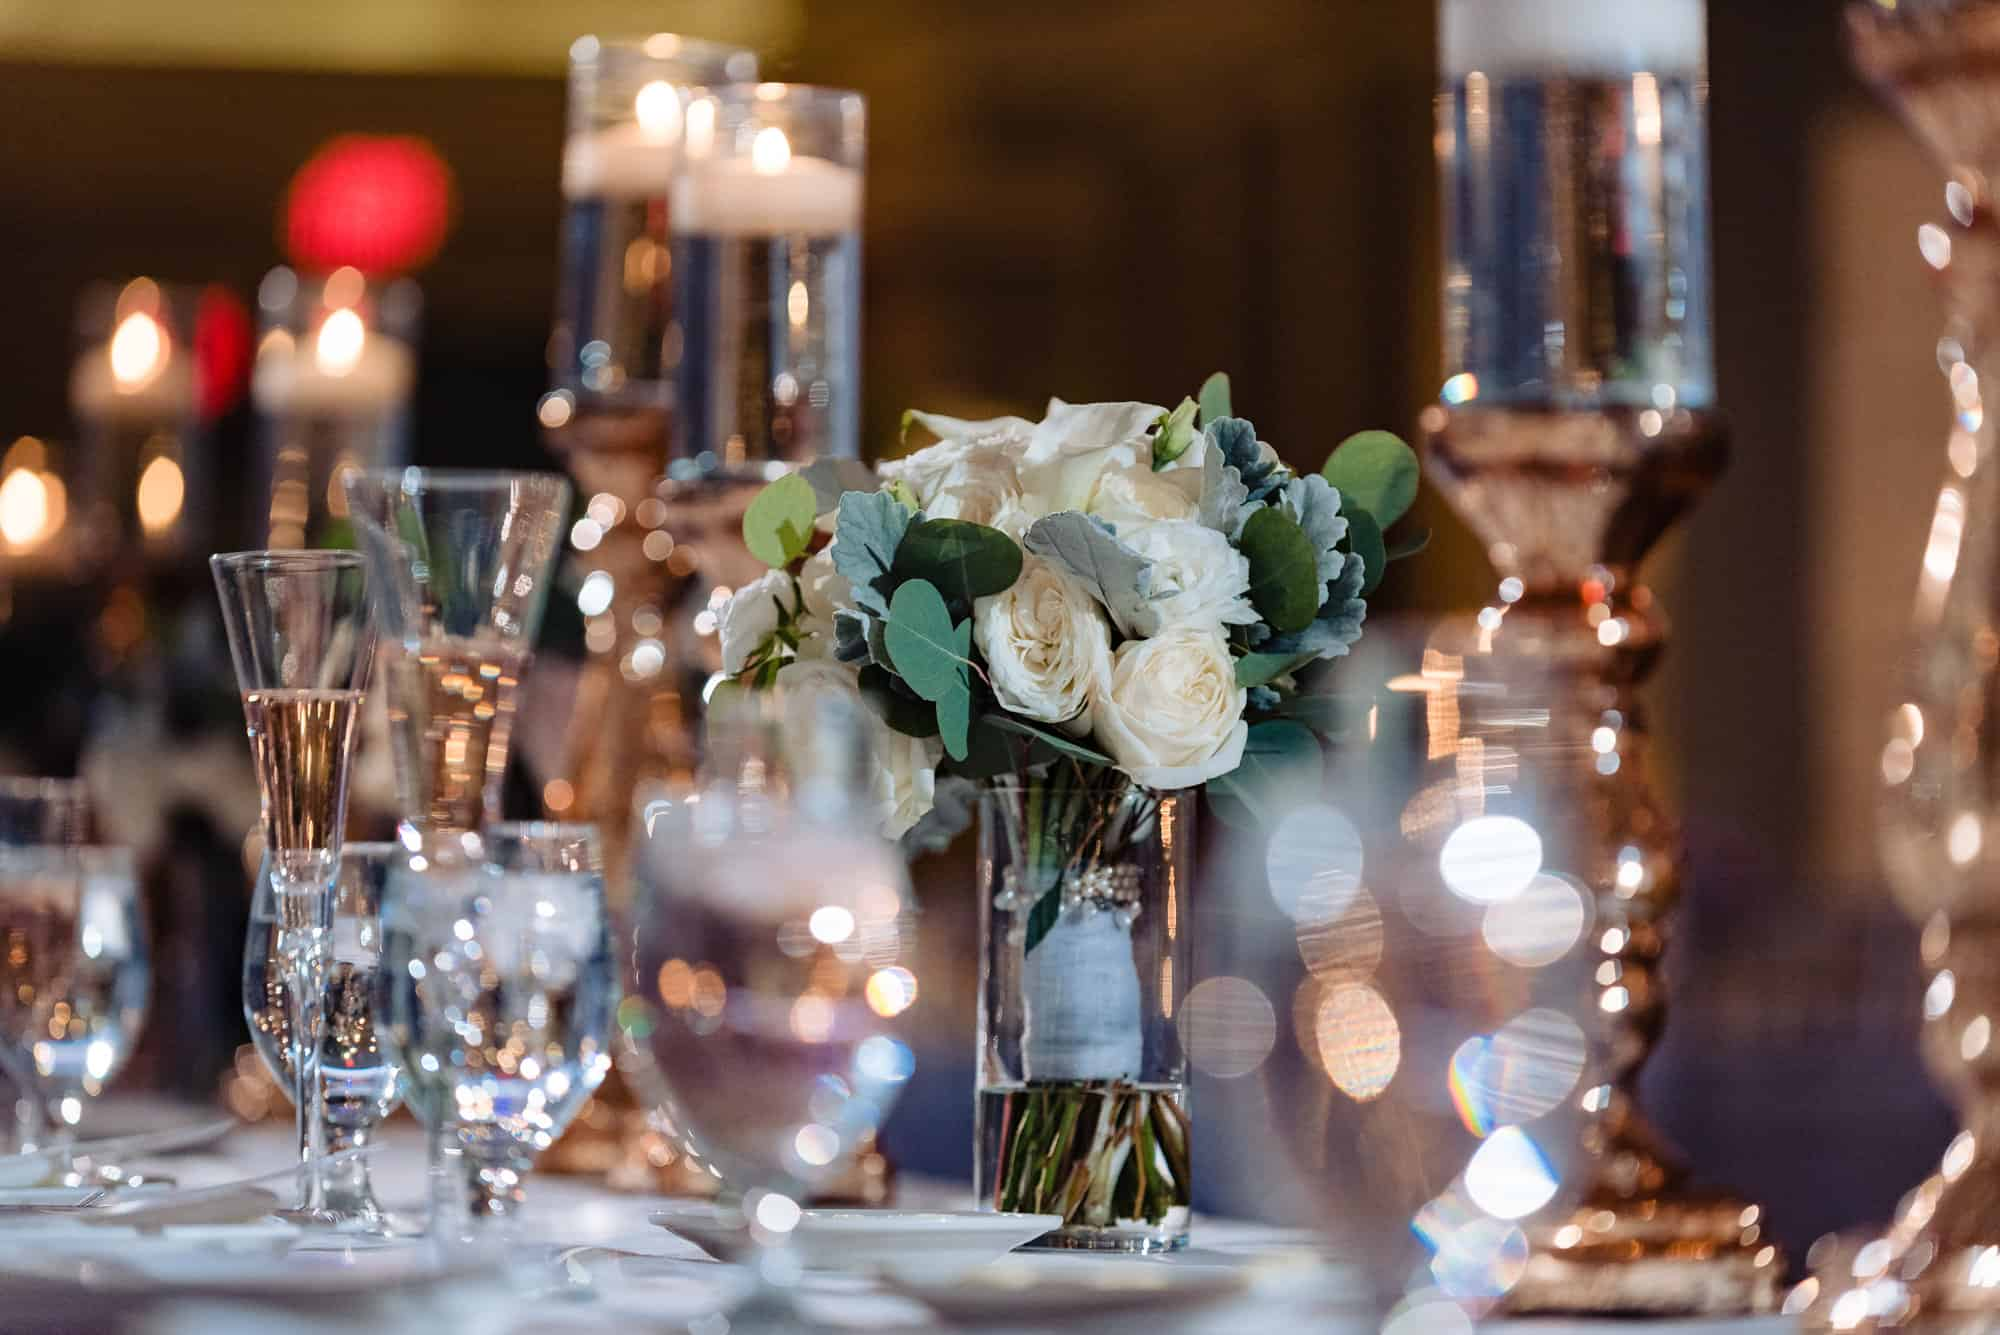 Image of brides white flower centerpiece from an Arts Ballroom Wedding in Philadelphia